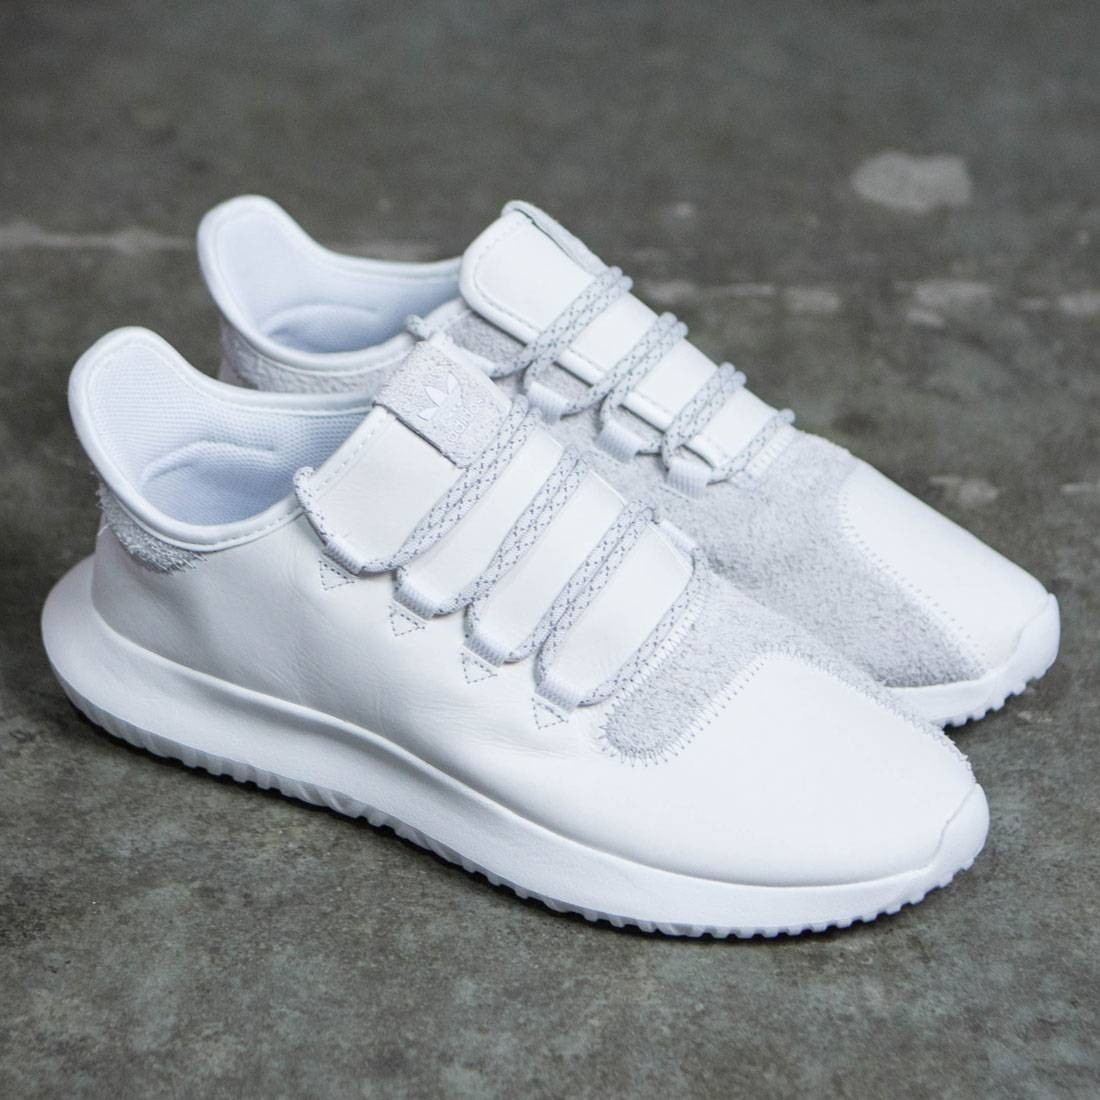 Adidas Shoes Low Quality